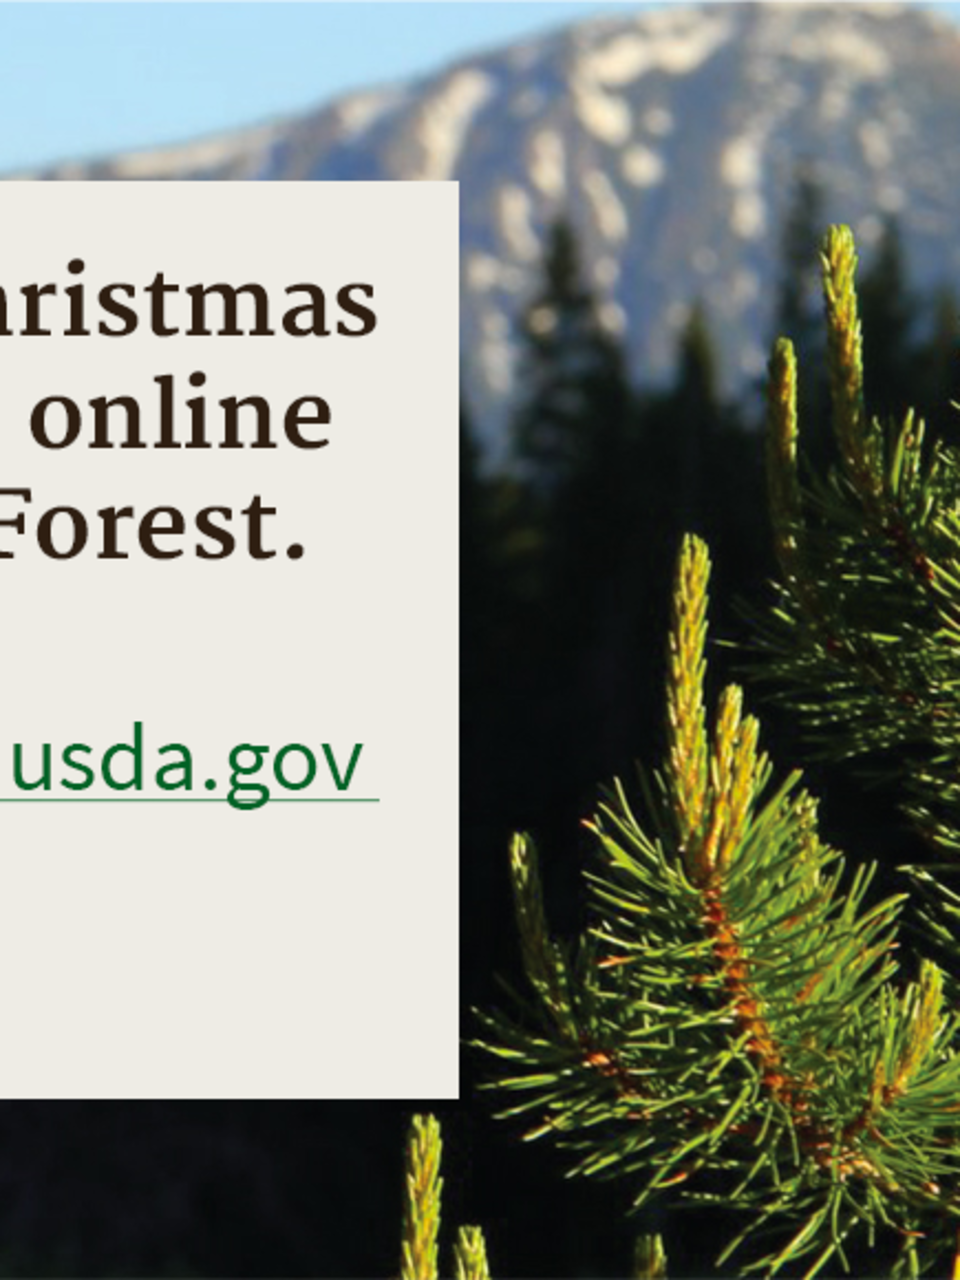 Permits to cut Christmas trees from